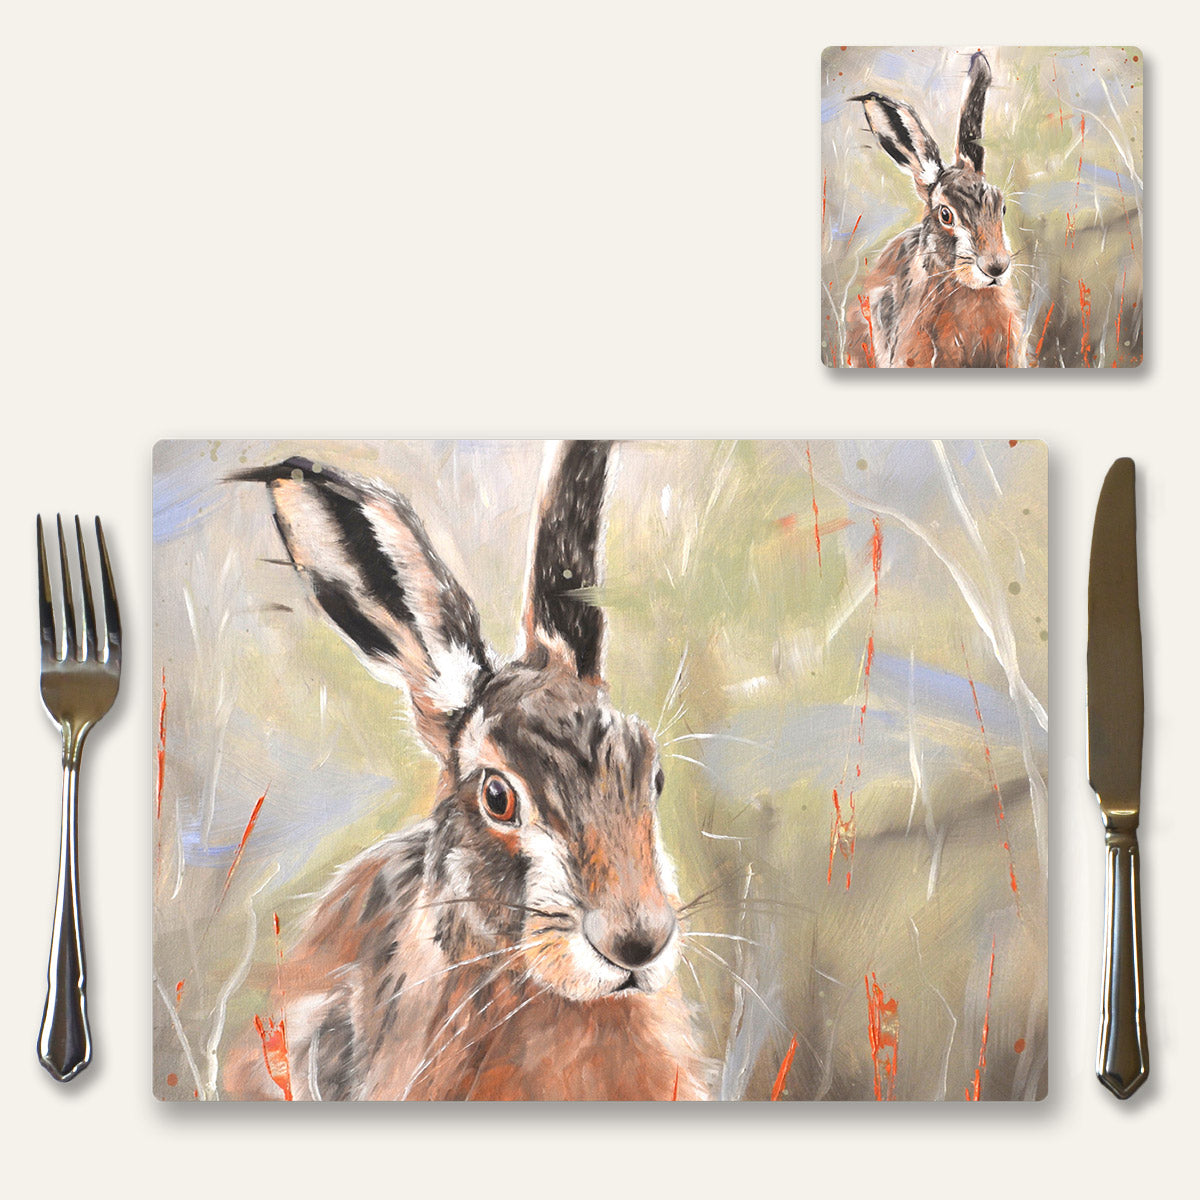 Pepper hare place mat and coaster